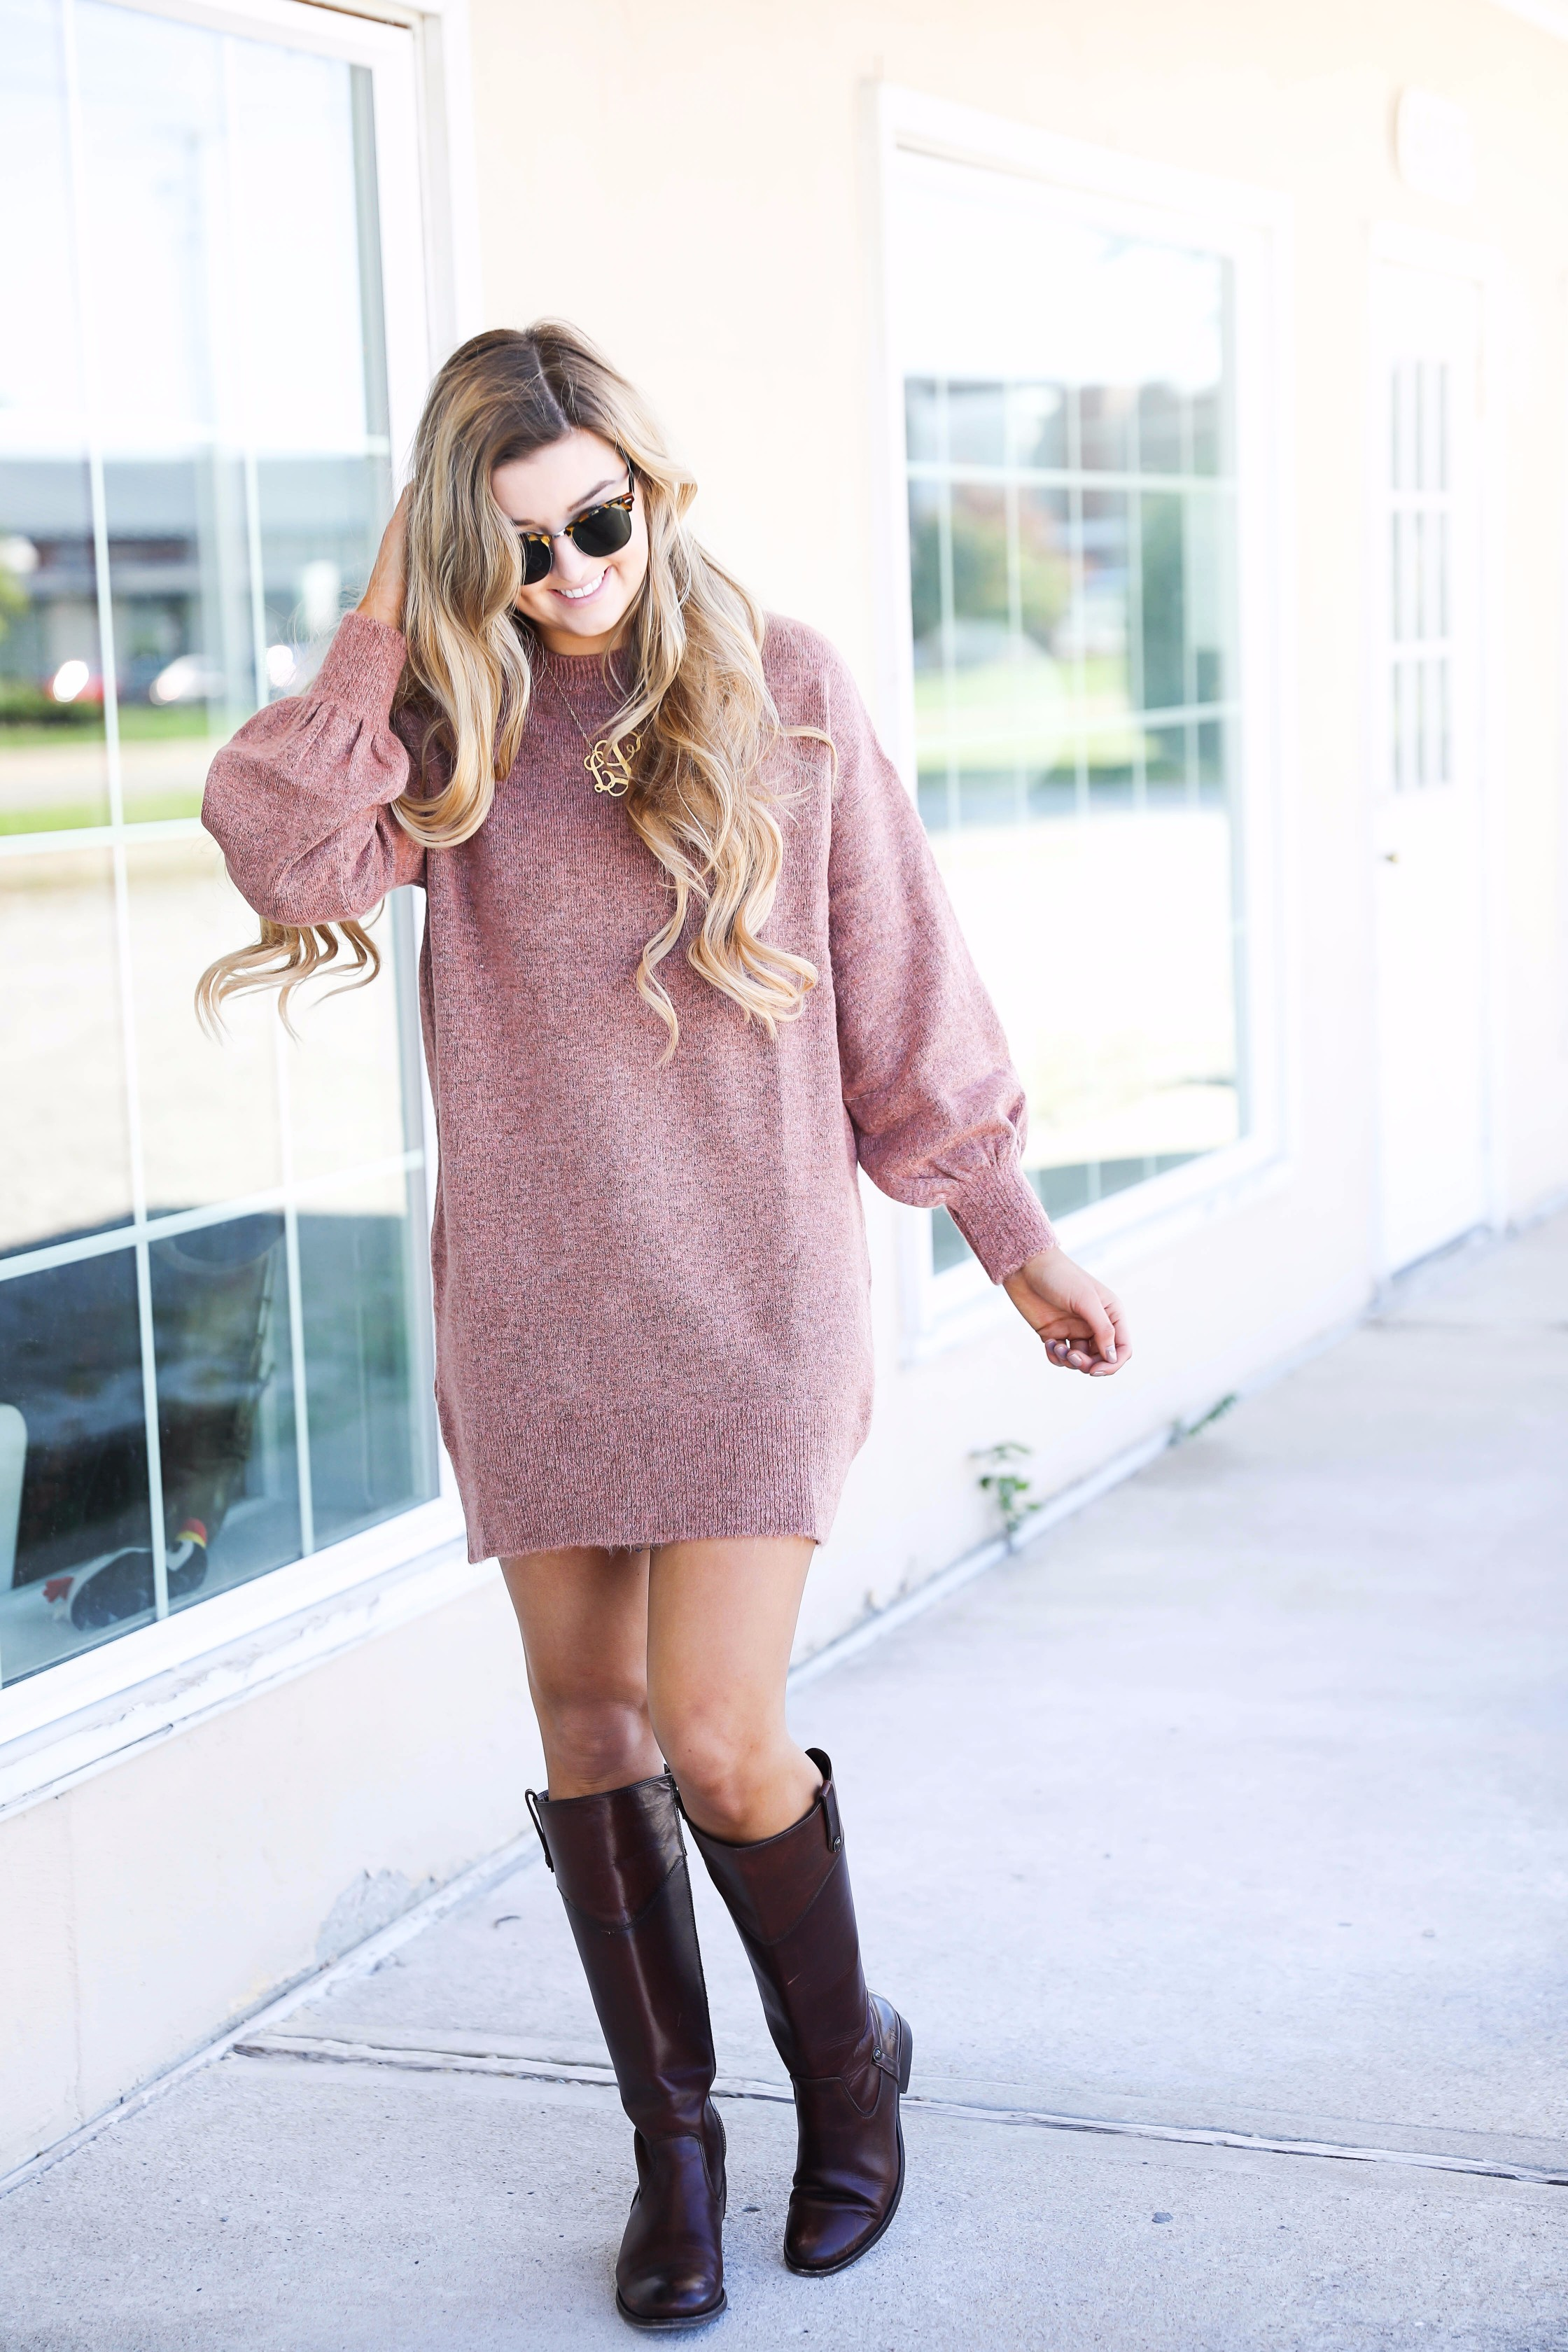 Thanksgiving Outfit Ideas on Fashion Blog Daily Dose of Charm by Lauren Lindmark